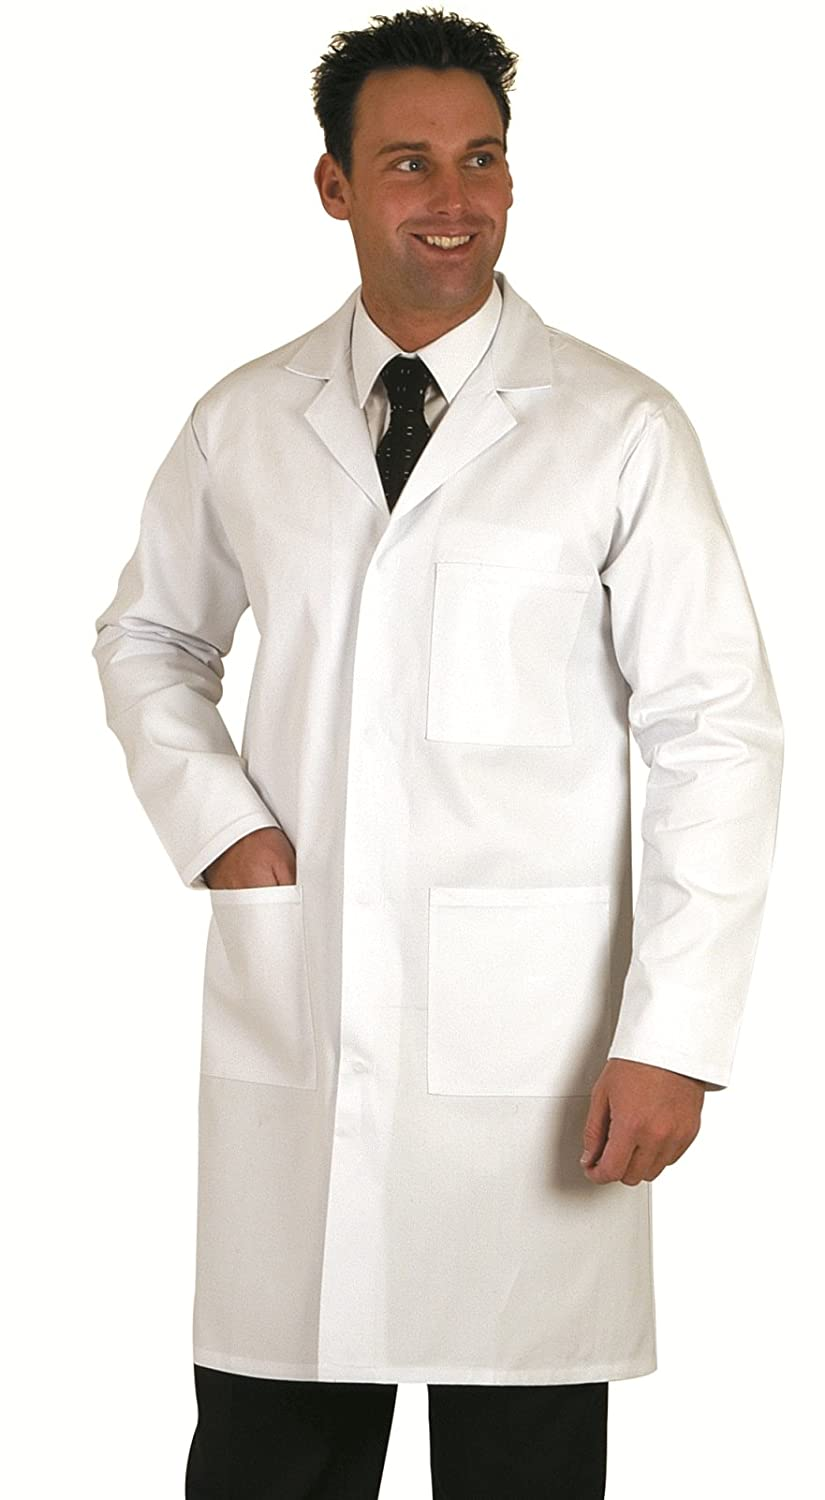 Top Quality Unisex White Lab / Doctors Coat: Amazon.co.uk: Clothing